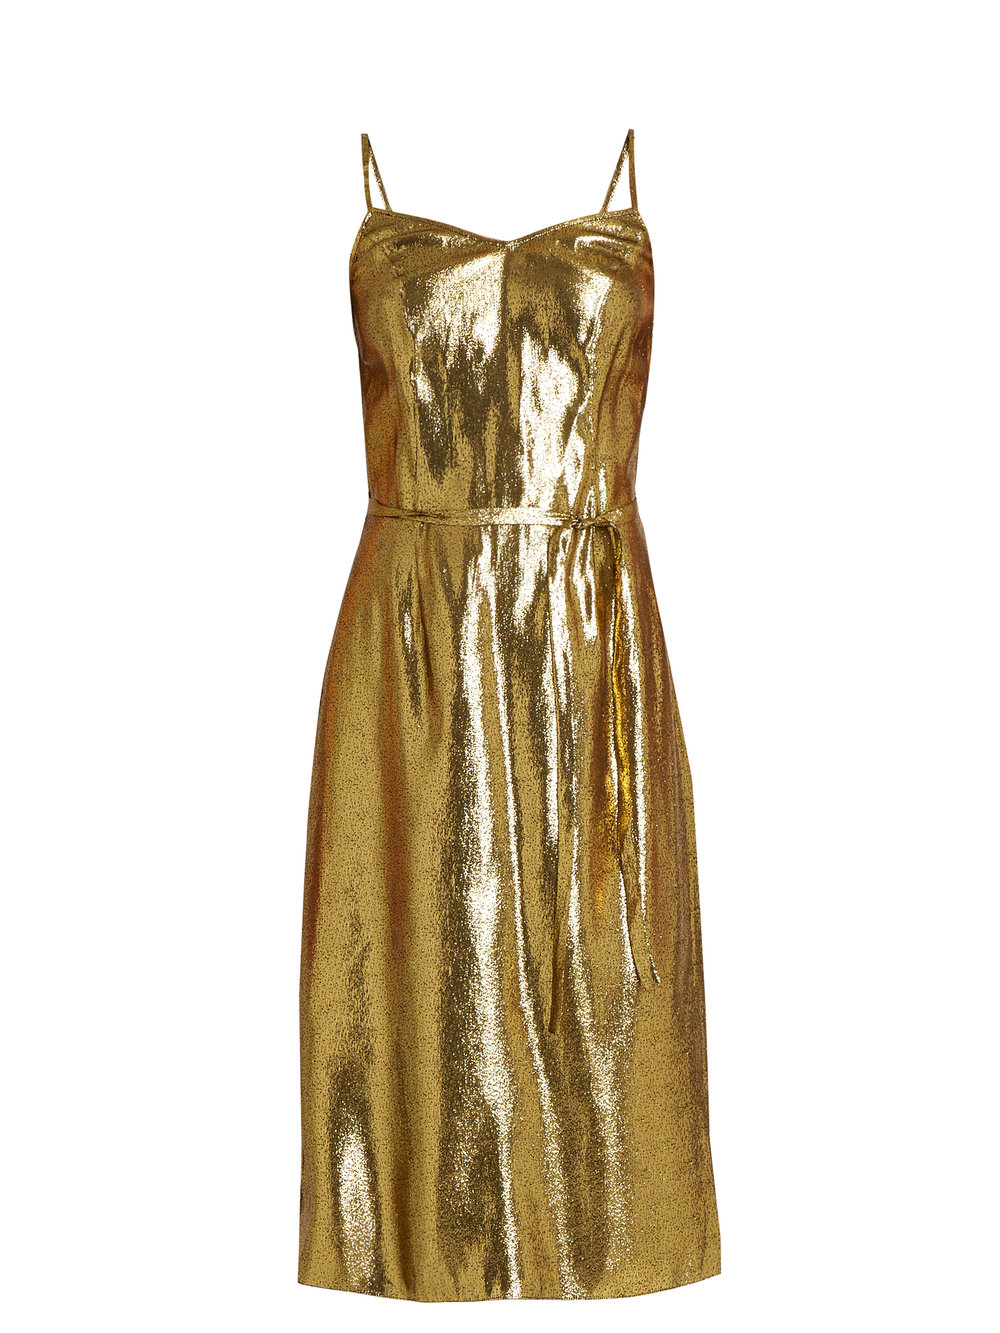 GOLD METALLIC - SOLD OUT